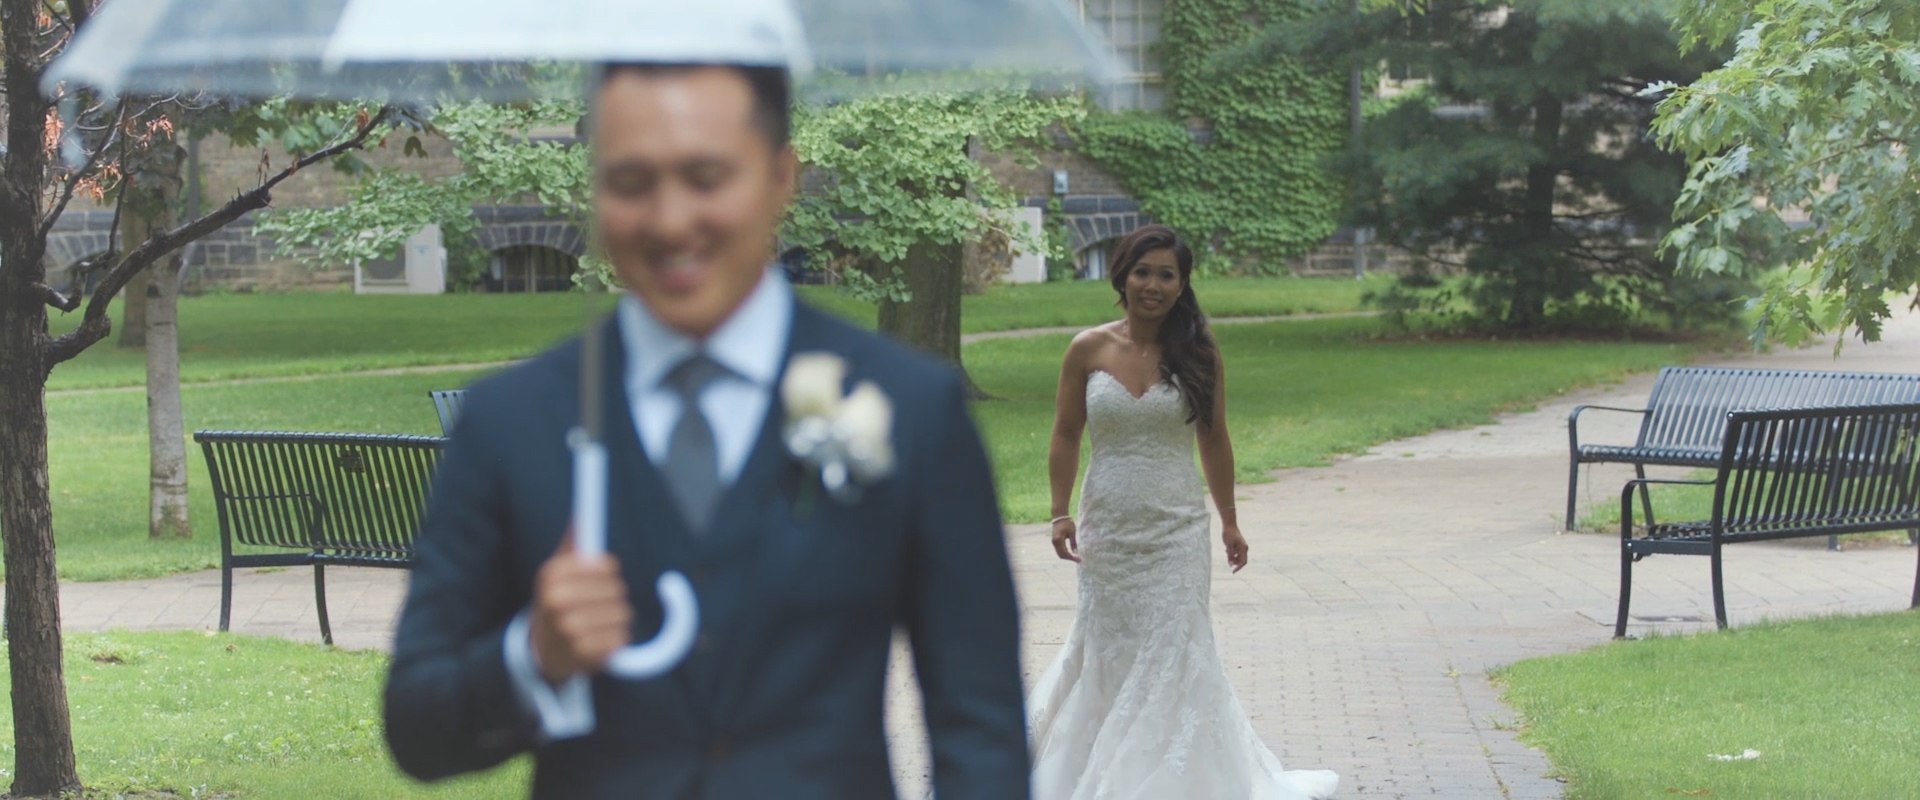 An image of a bride as she approaches her groom during their first look at the University of Toronto; taken from a Toronto Wedding Video